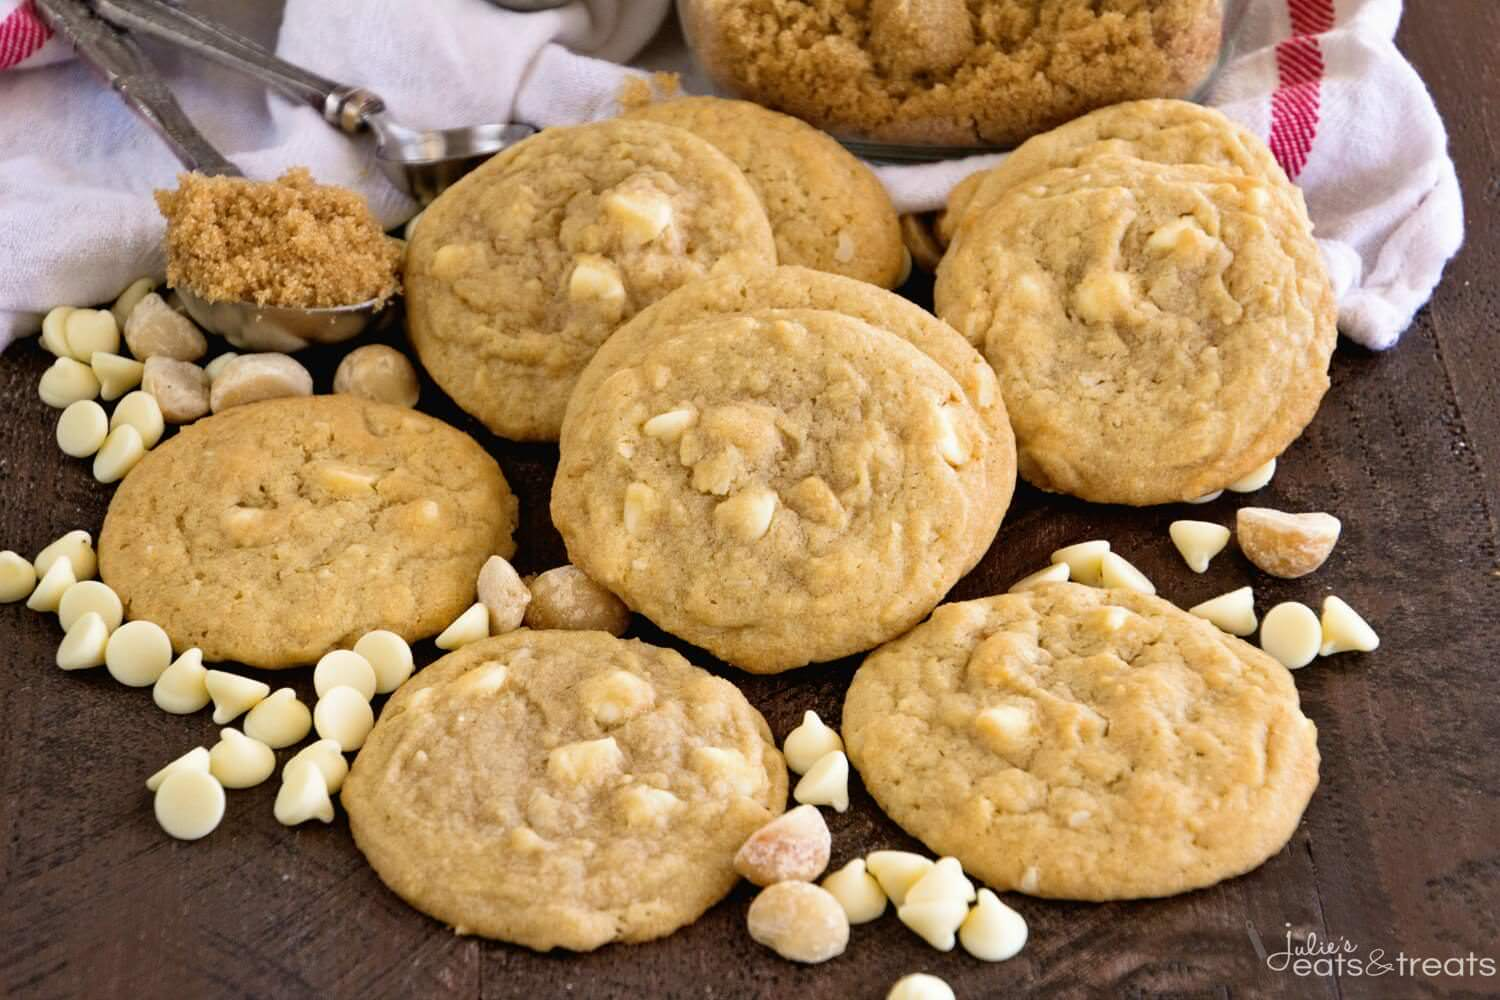 Macadamia Nut Cookies on brown board